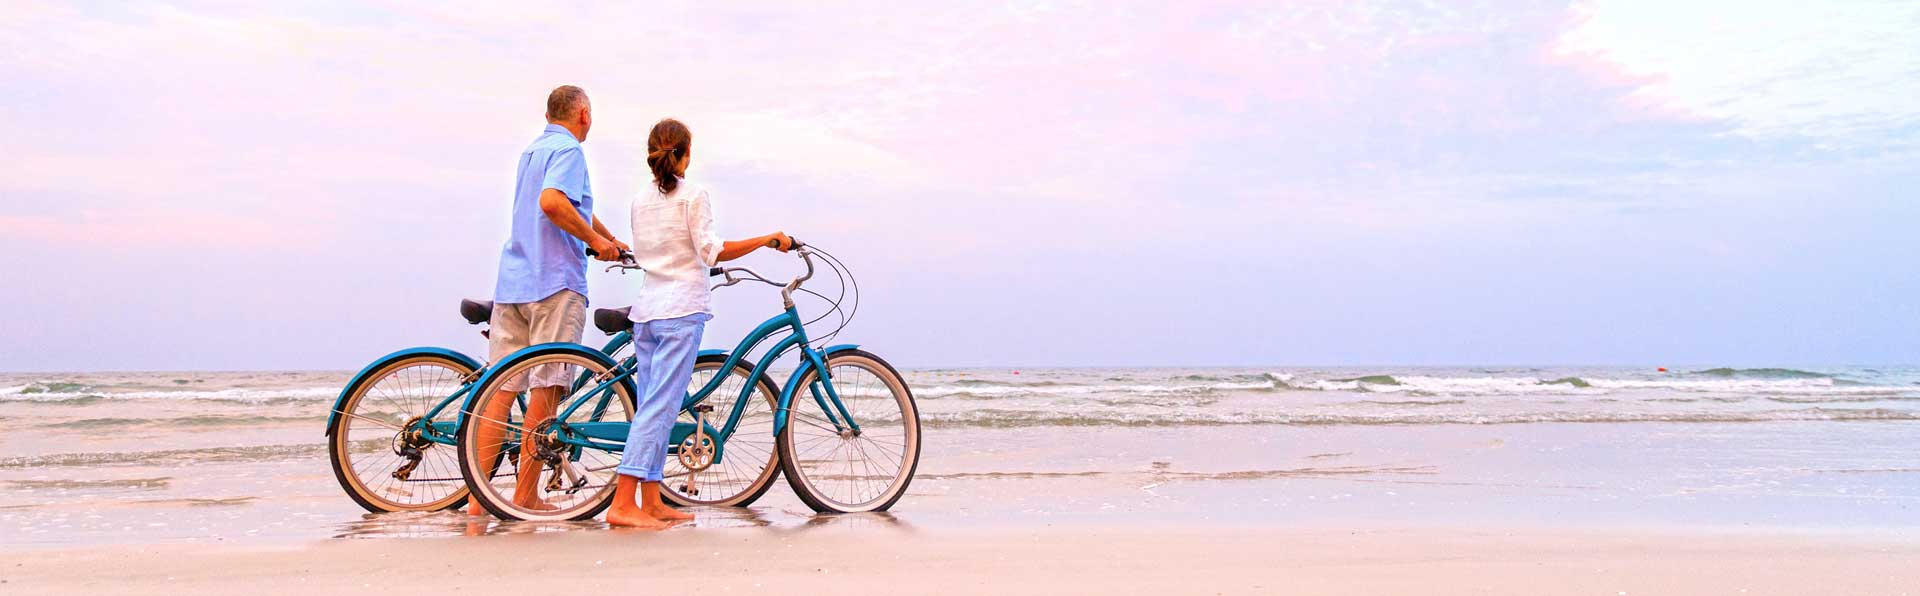 Seniors riding bicycles on the beach